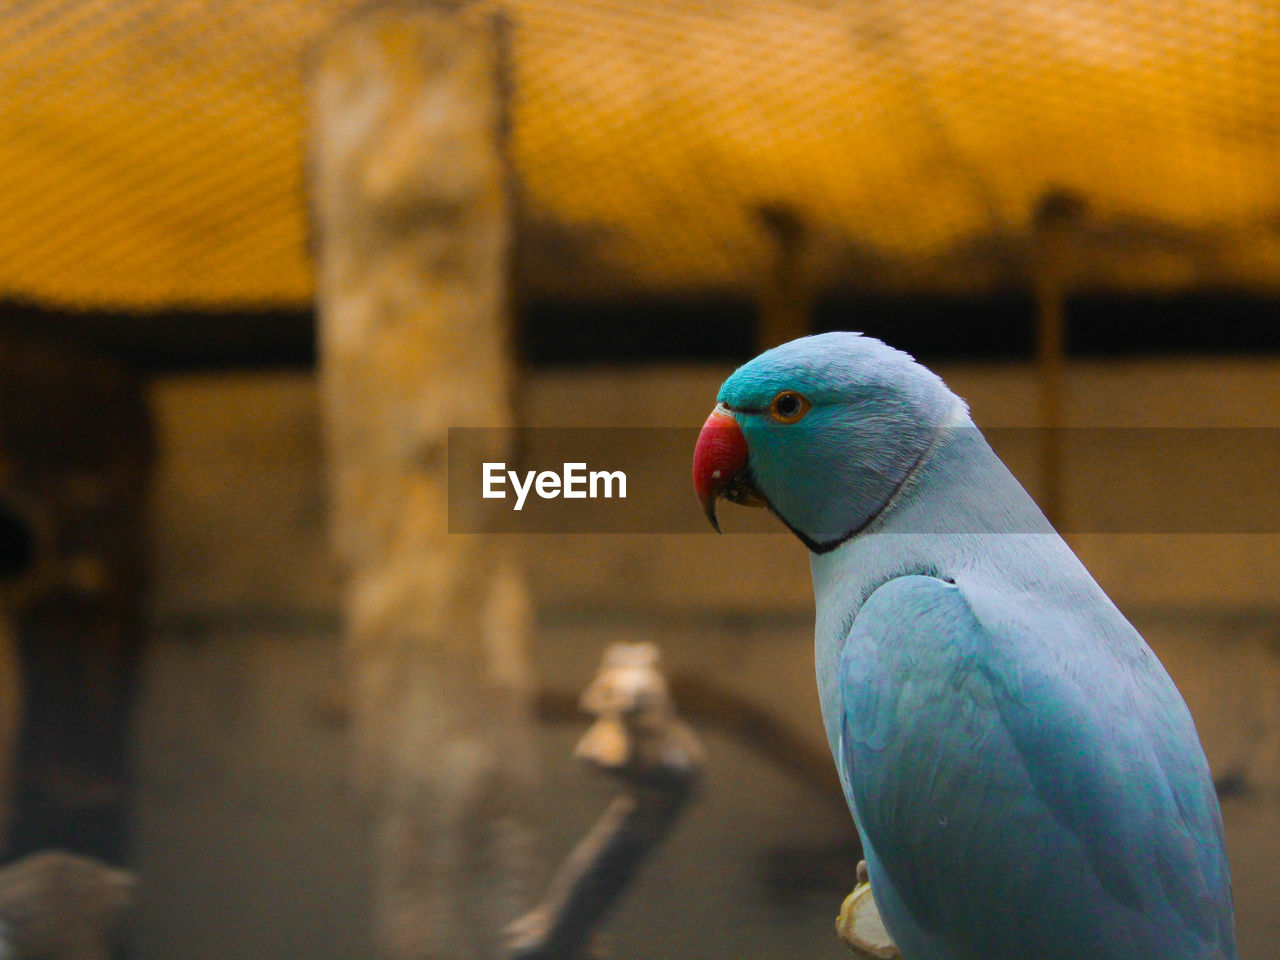 bird, animal themes, animal, vertebrate, parrot, one animal, animal wildlife, close-up, focus on foreground, animals in the wild, no people, budgerigar, perching, nature, beauty in nature, day, blue, outdoors, parakeet, animal head, animal eye